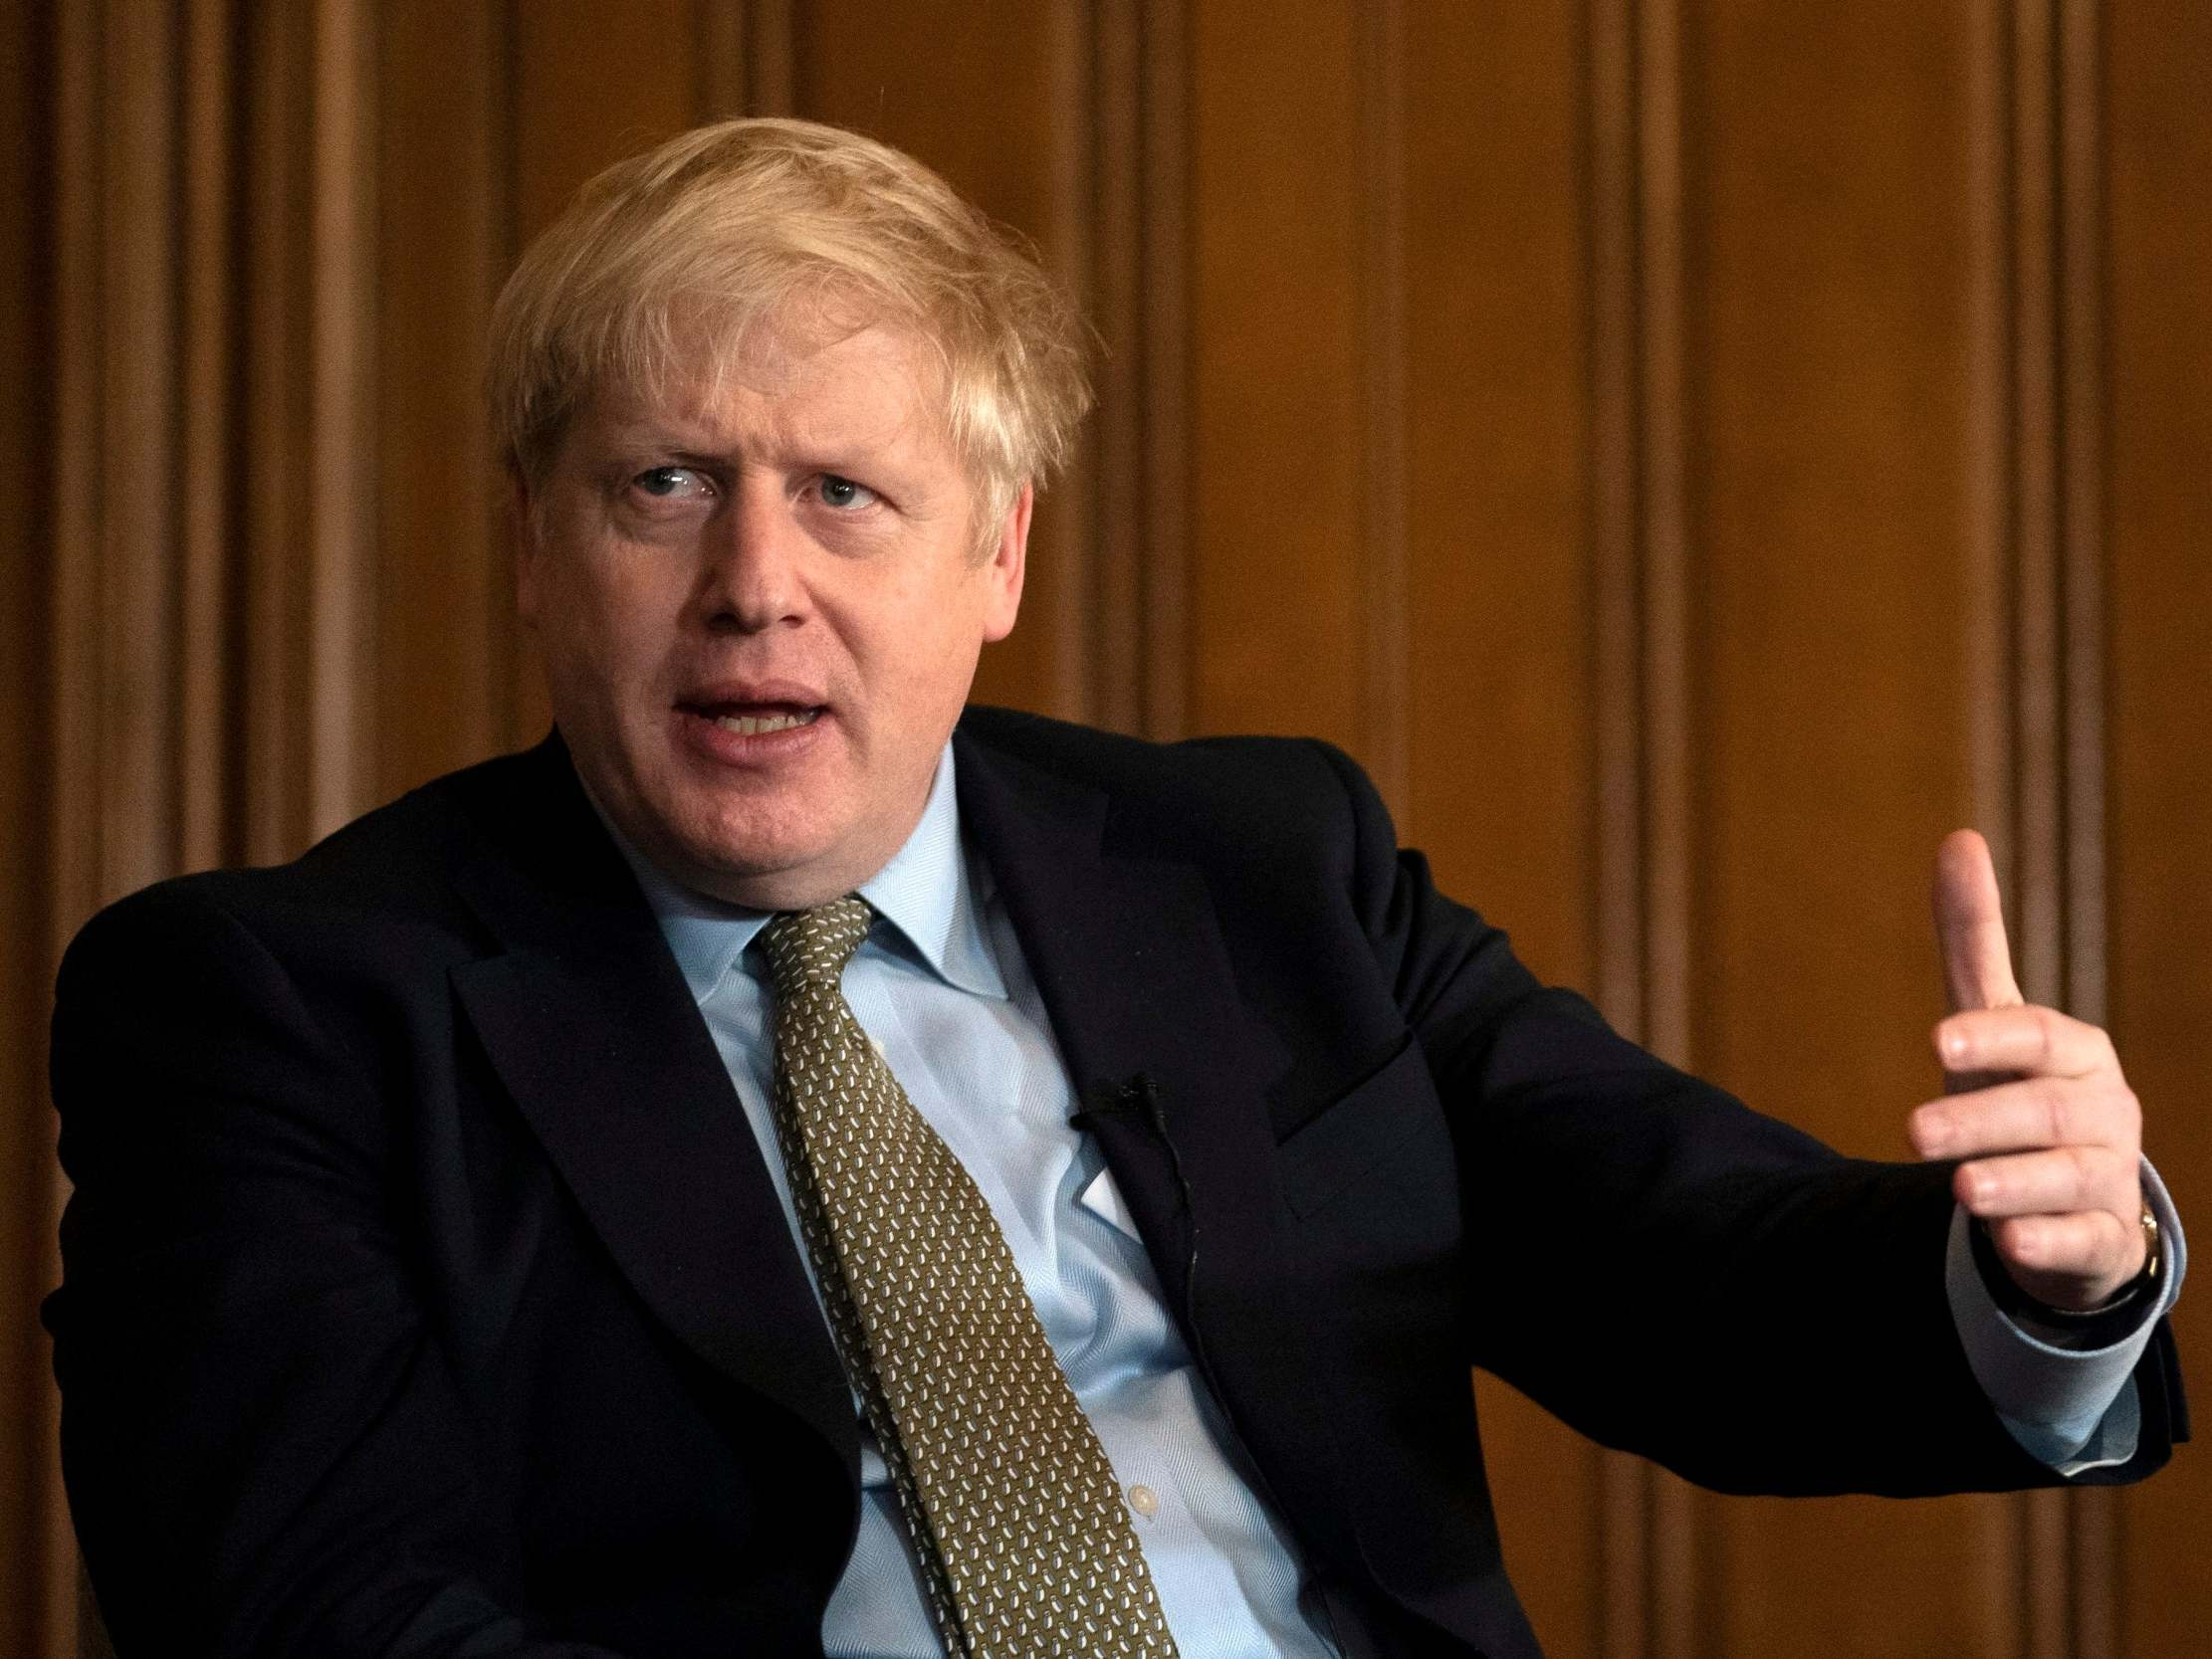 Outrage at 'astounding' cost of Brexit, as Boris Johnson faces Commons rebellion over Huawei - follow live